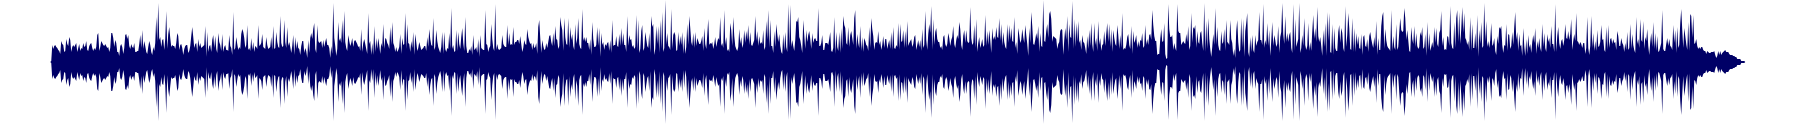 waveform of track #39480